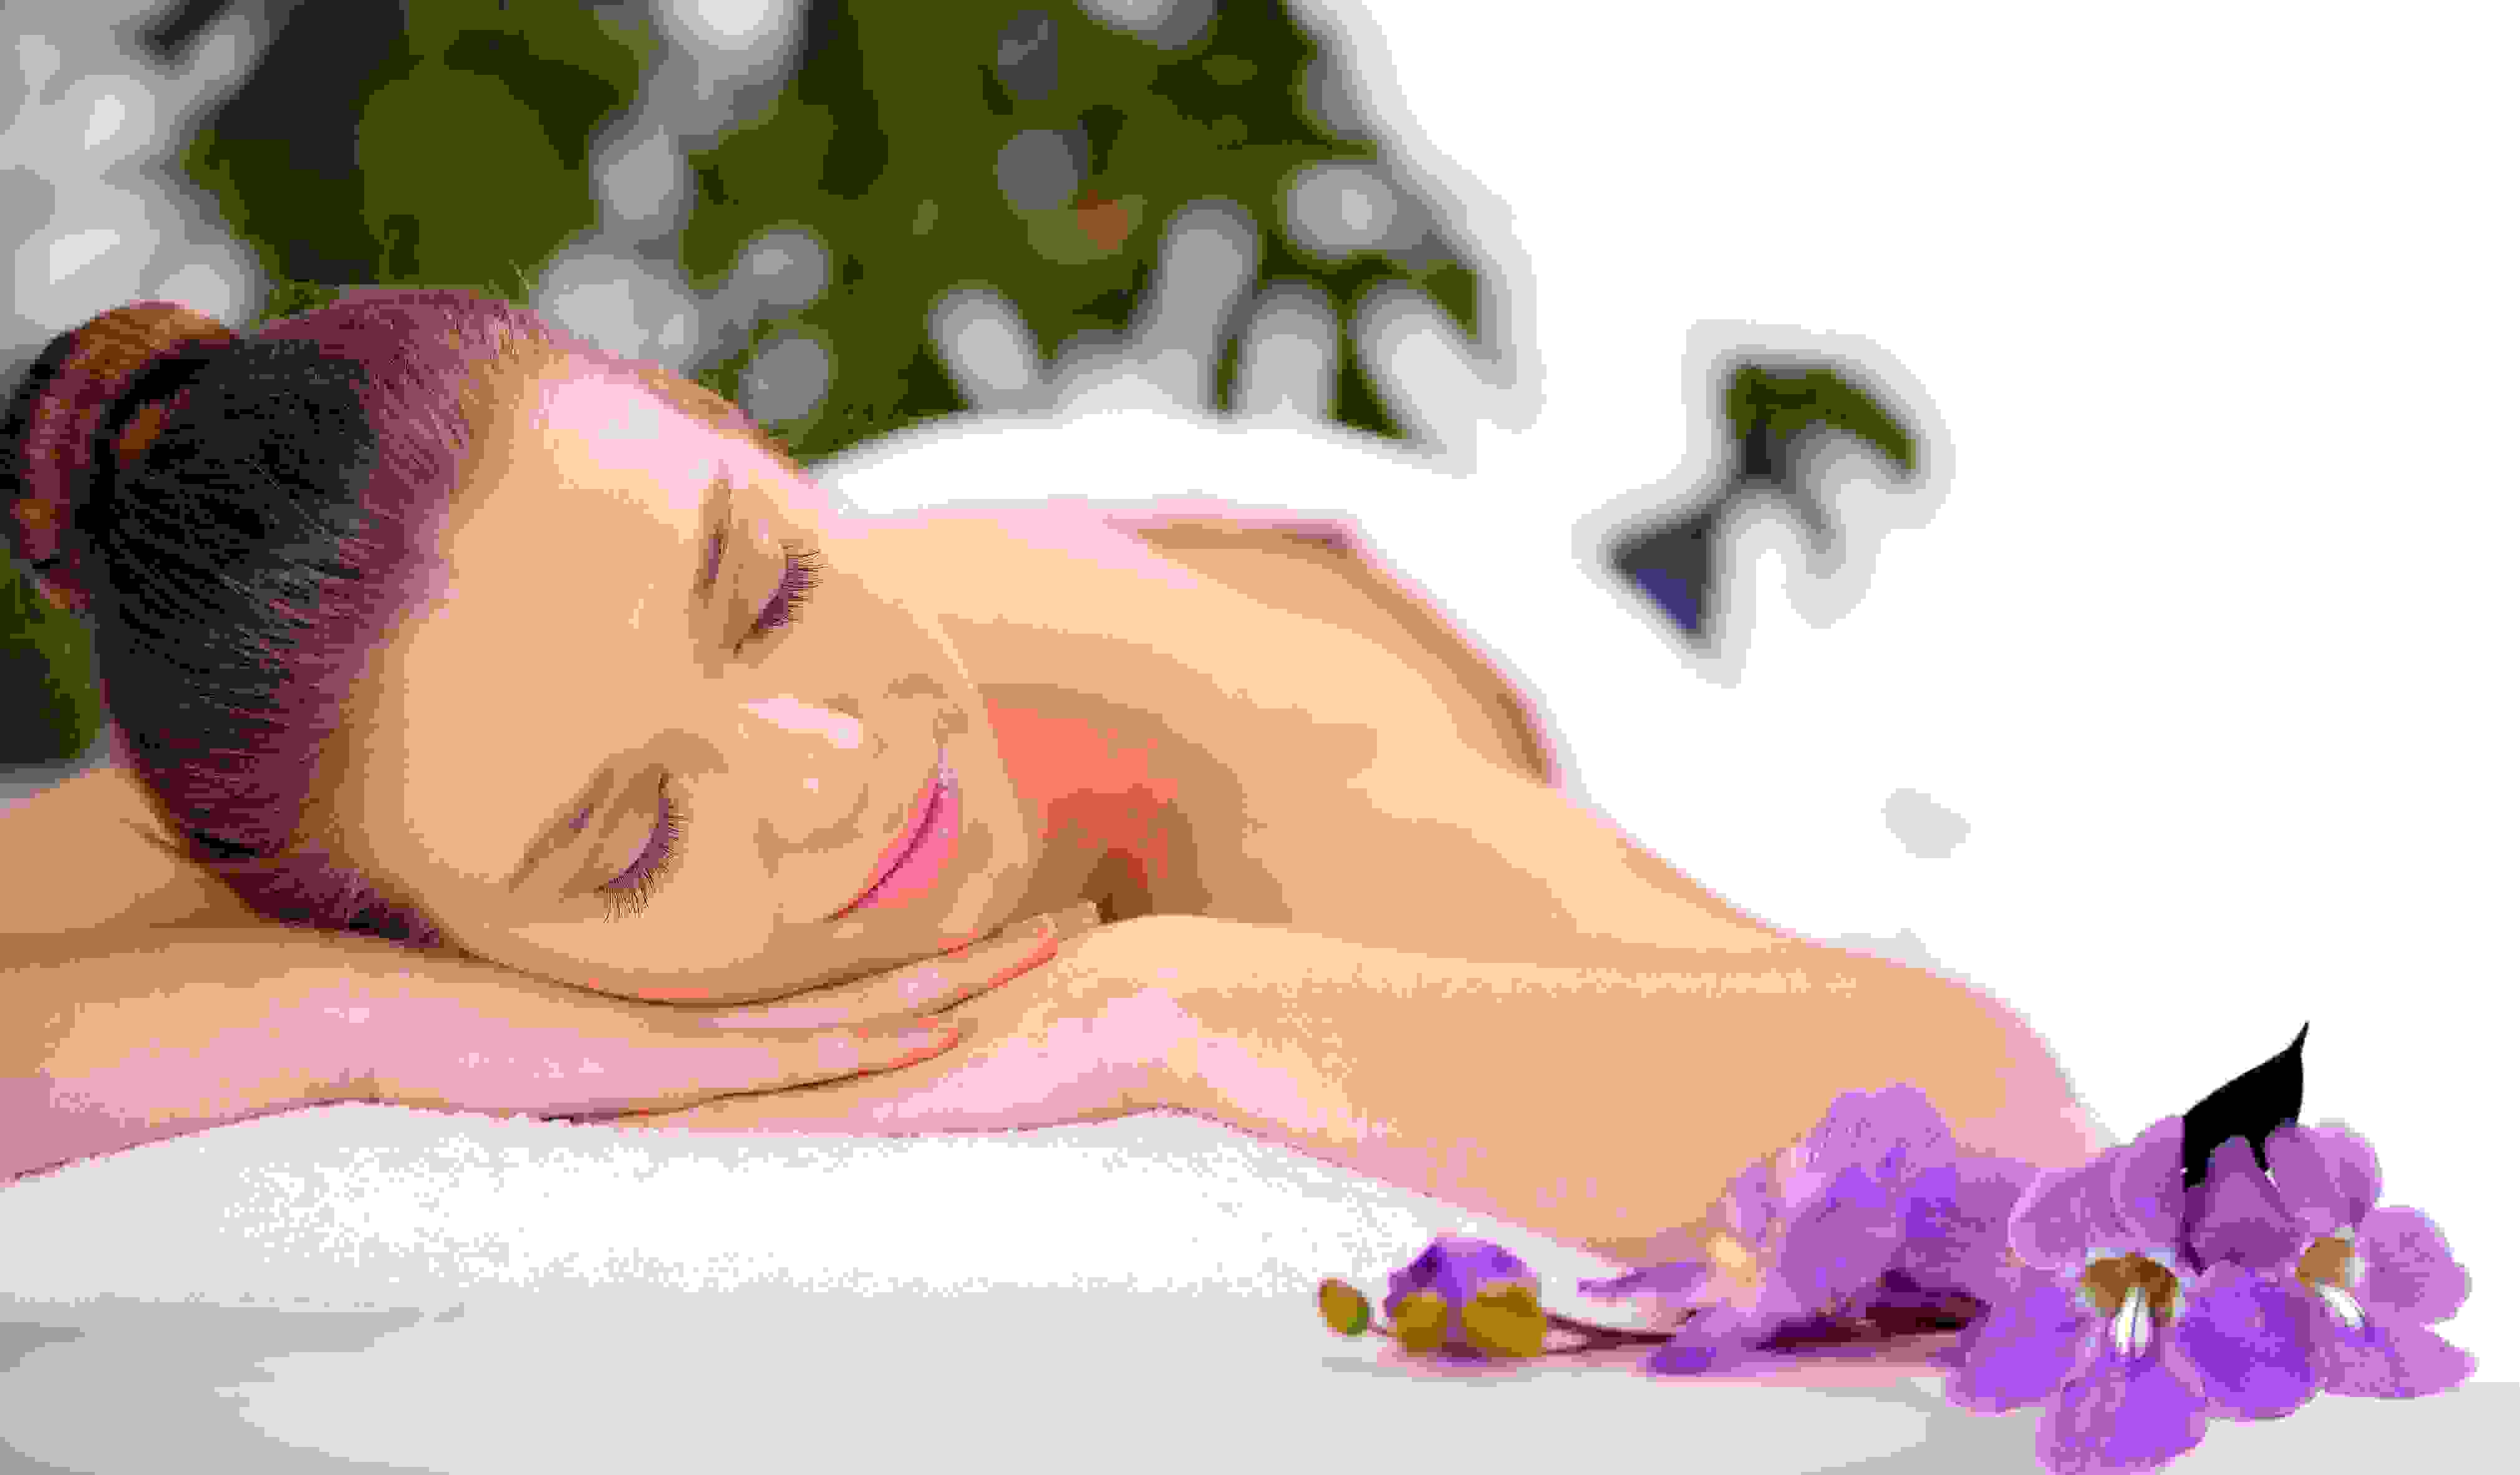 Lady relaxing in the Vale Spa next to purple flowers